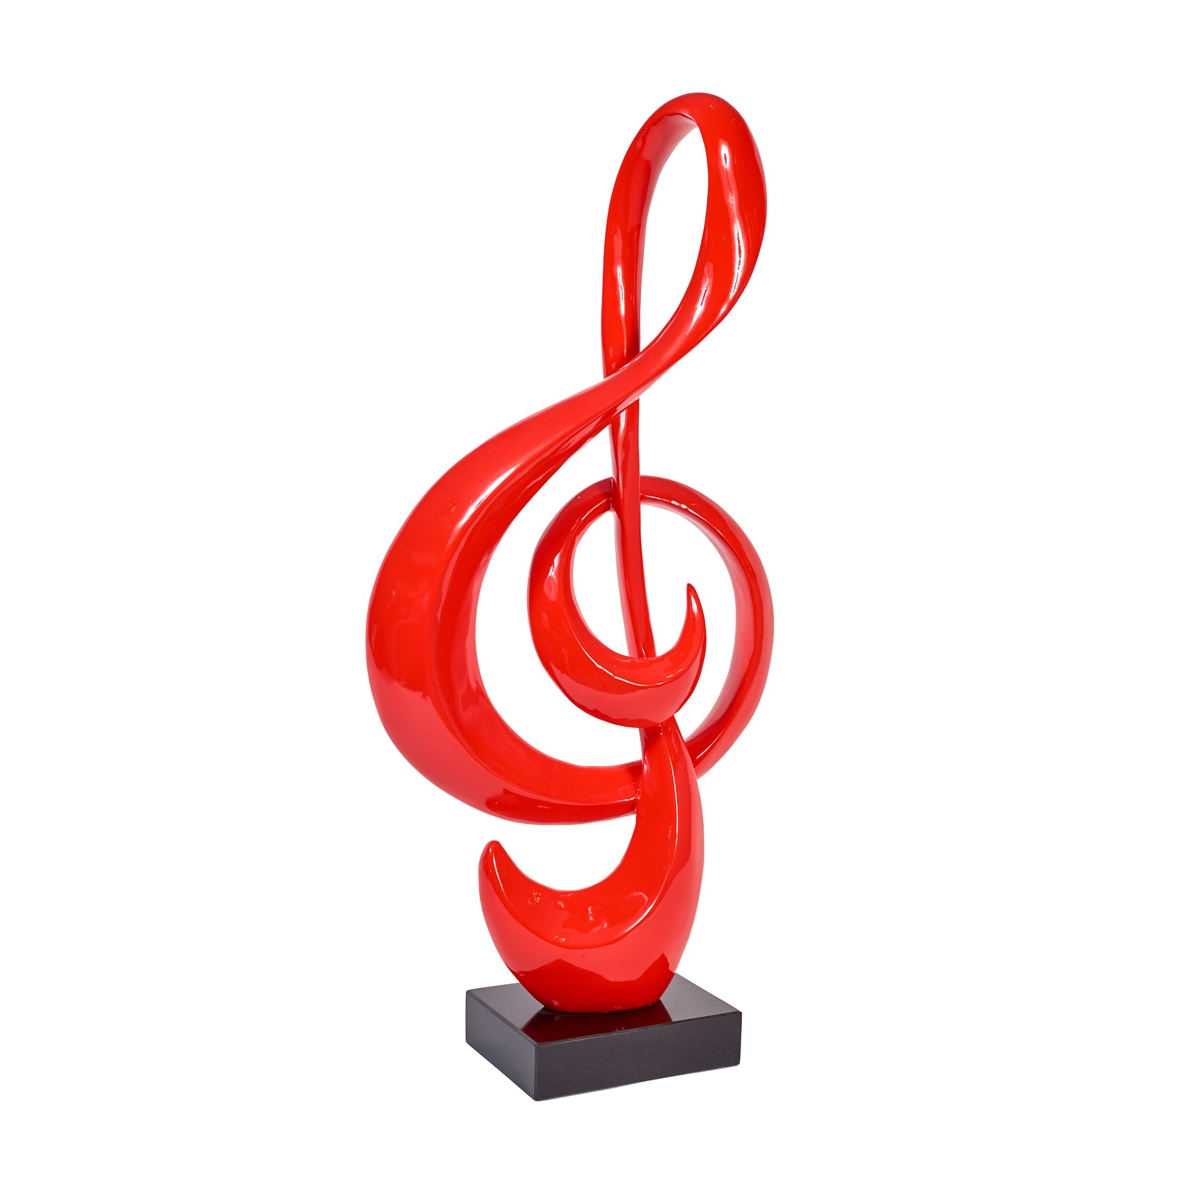 Sculpture design zendart design s lection zendart design - Objet deco design rouge ...